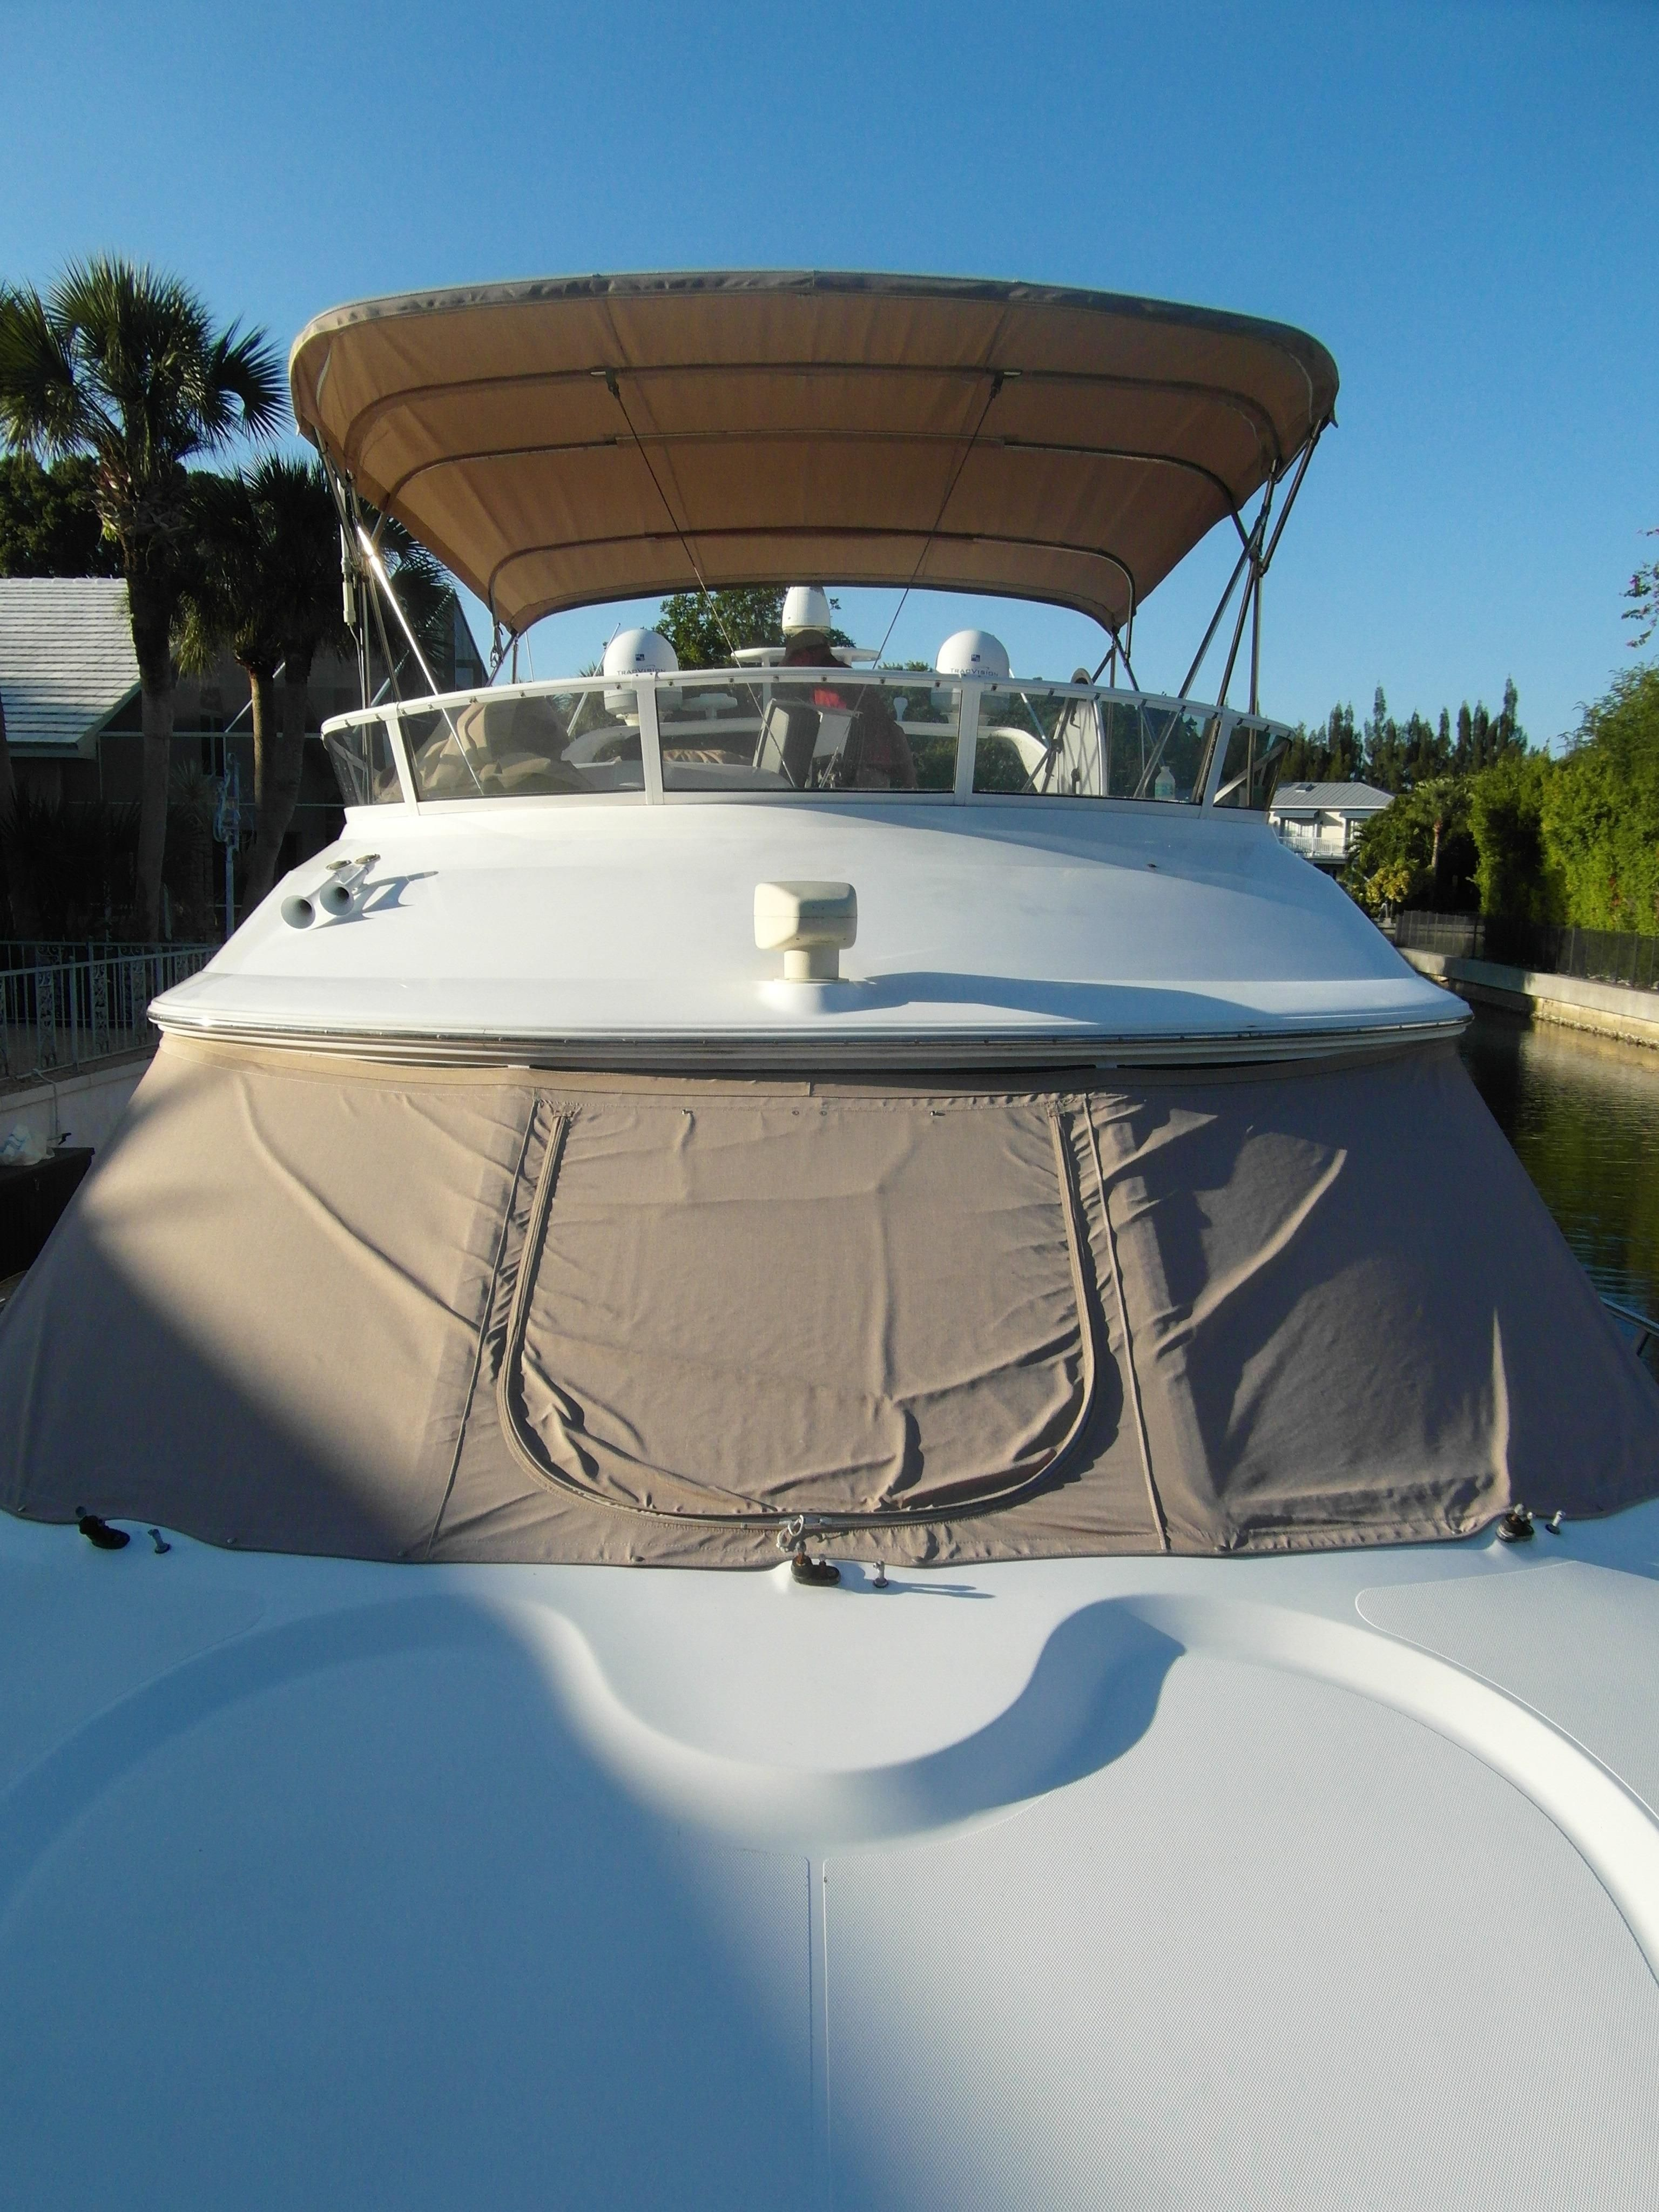 Used Motor Yachts for Sale from 40 to 50 feet - SYS Yacht Sales